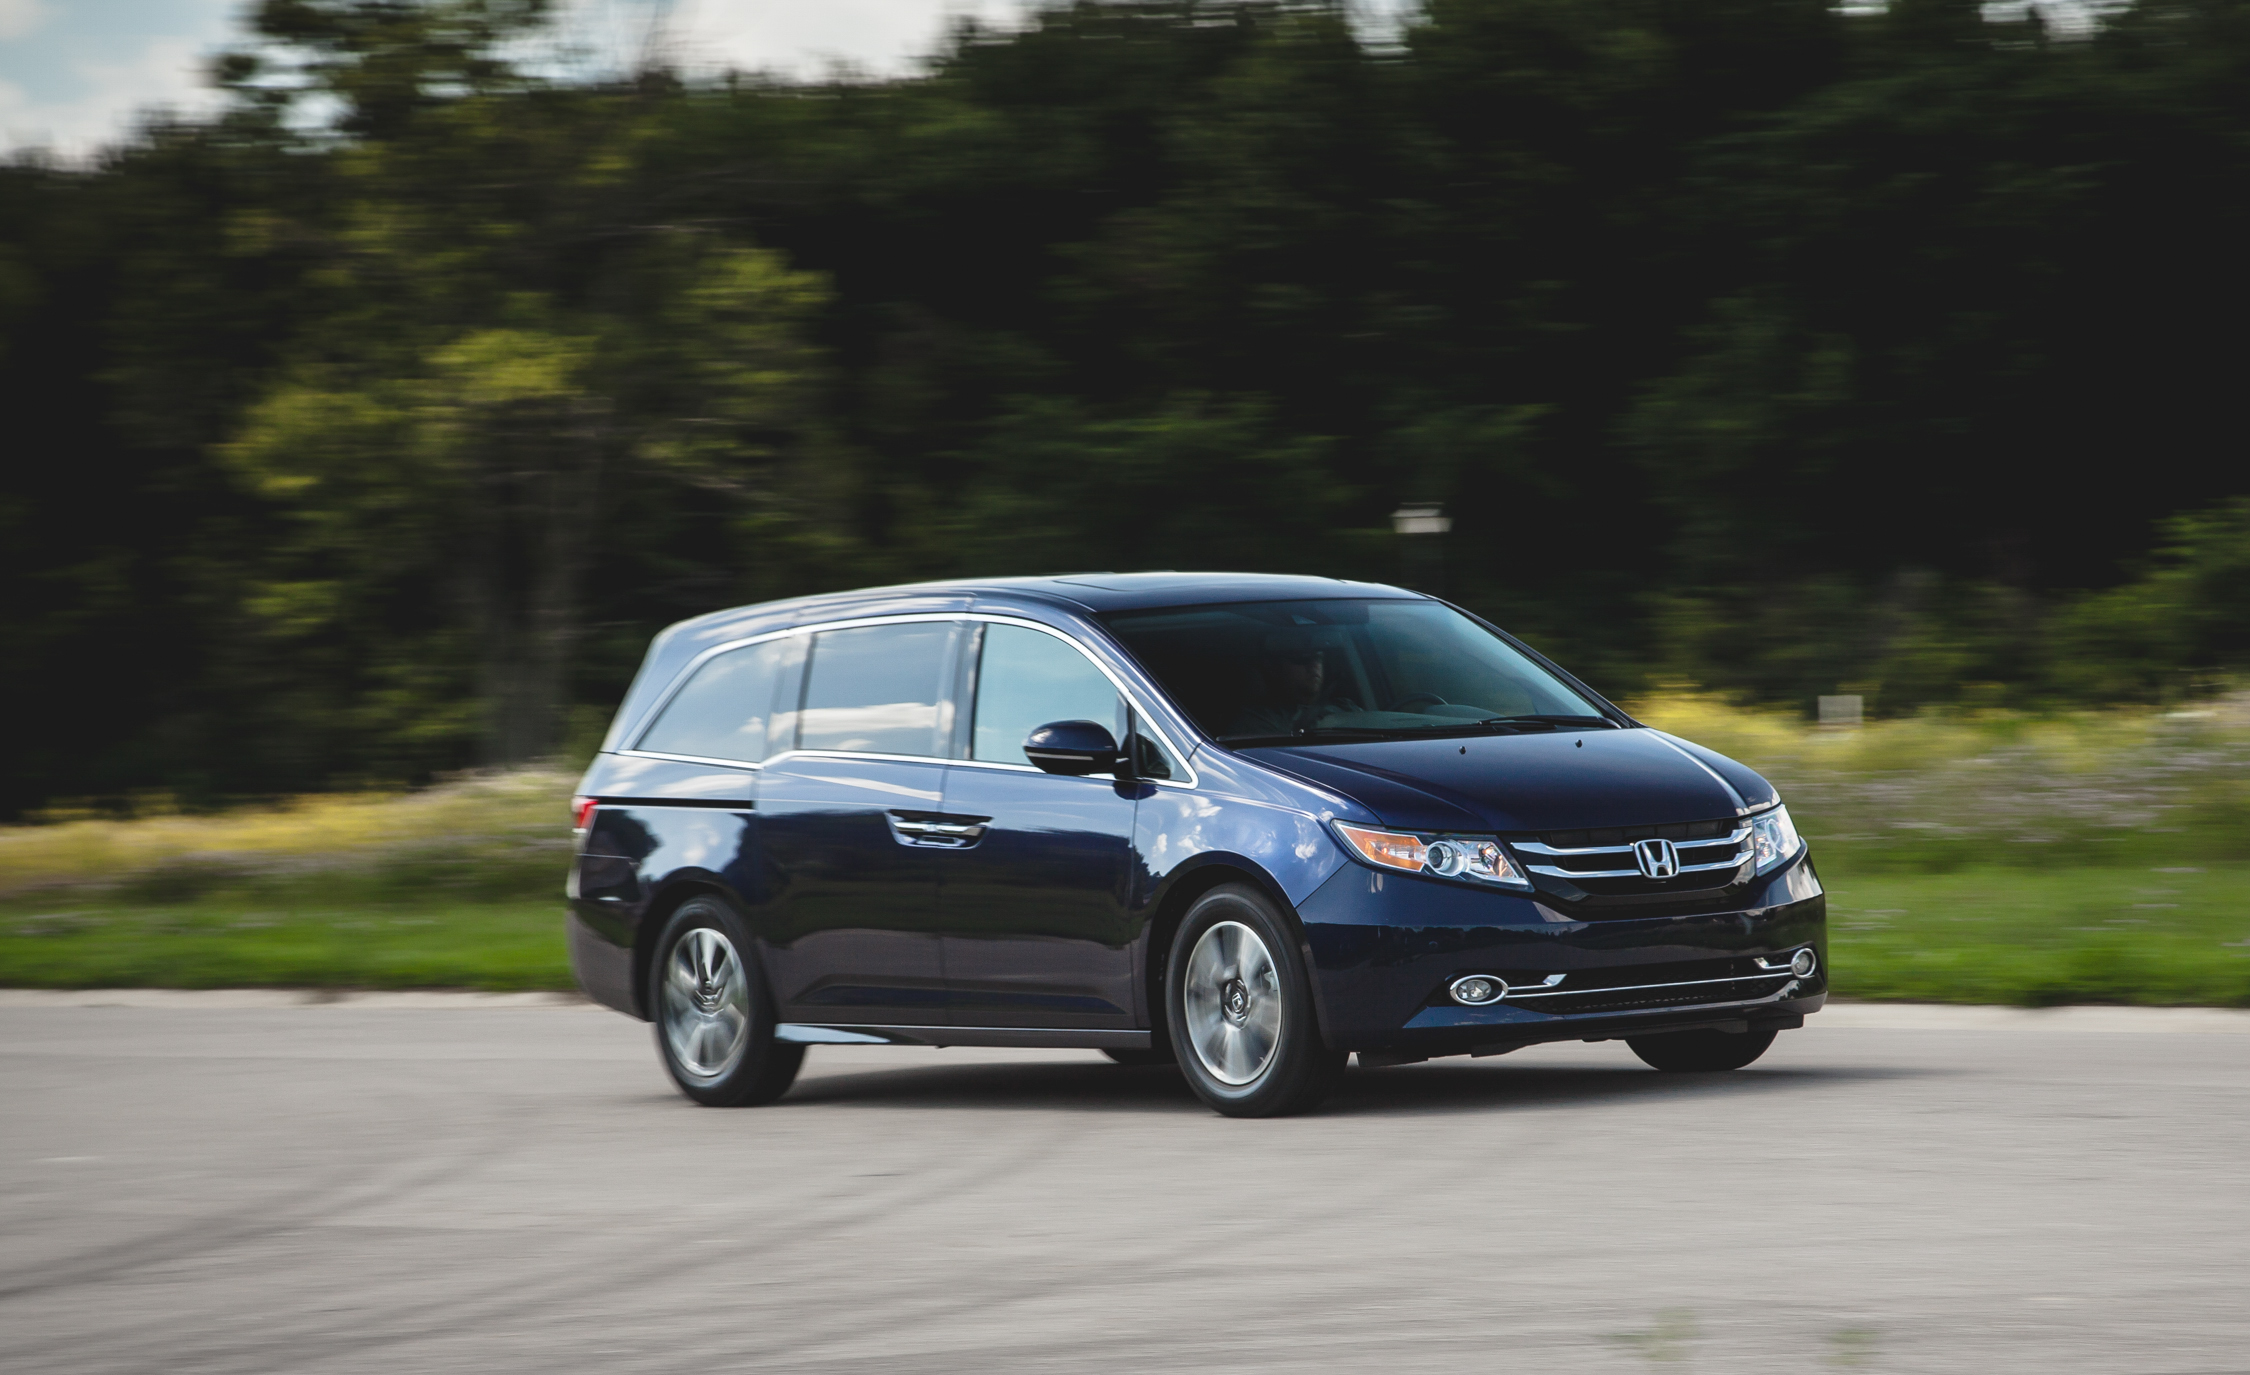 2014 Honda Odyssey Touring Elite (Photo 10 of 19)